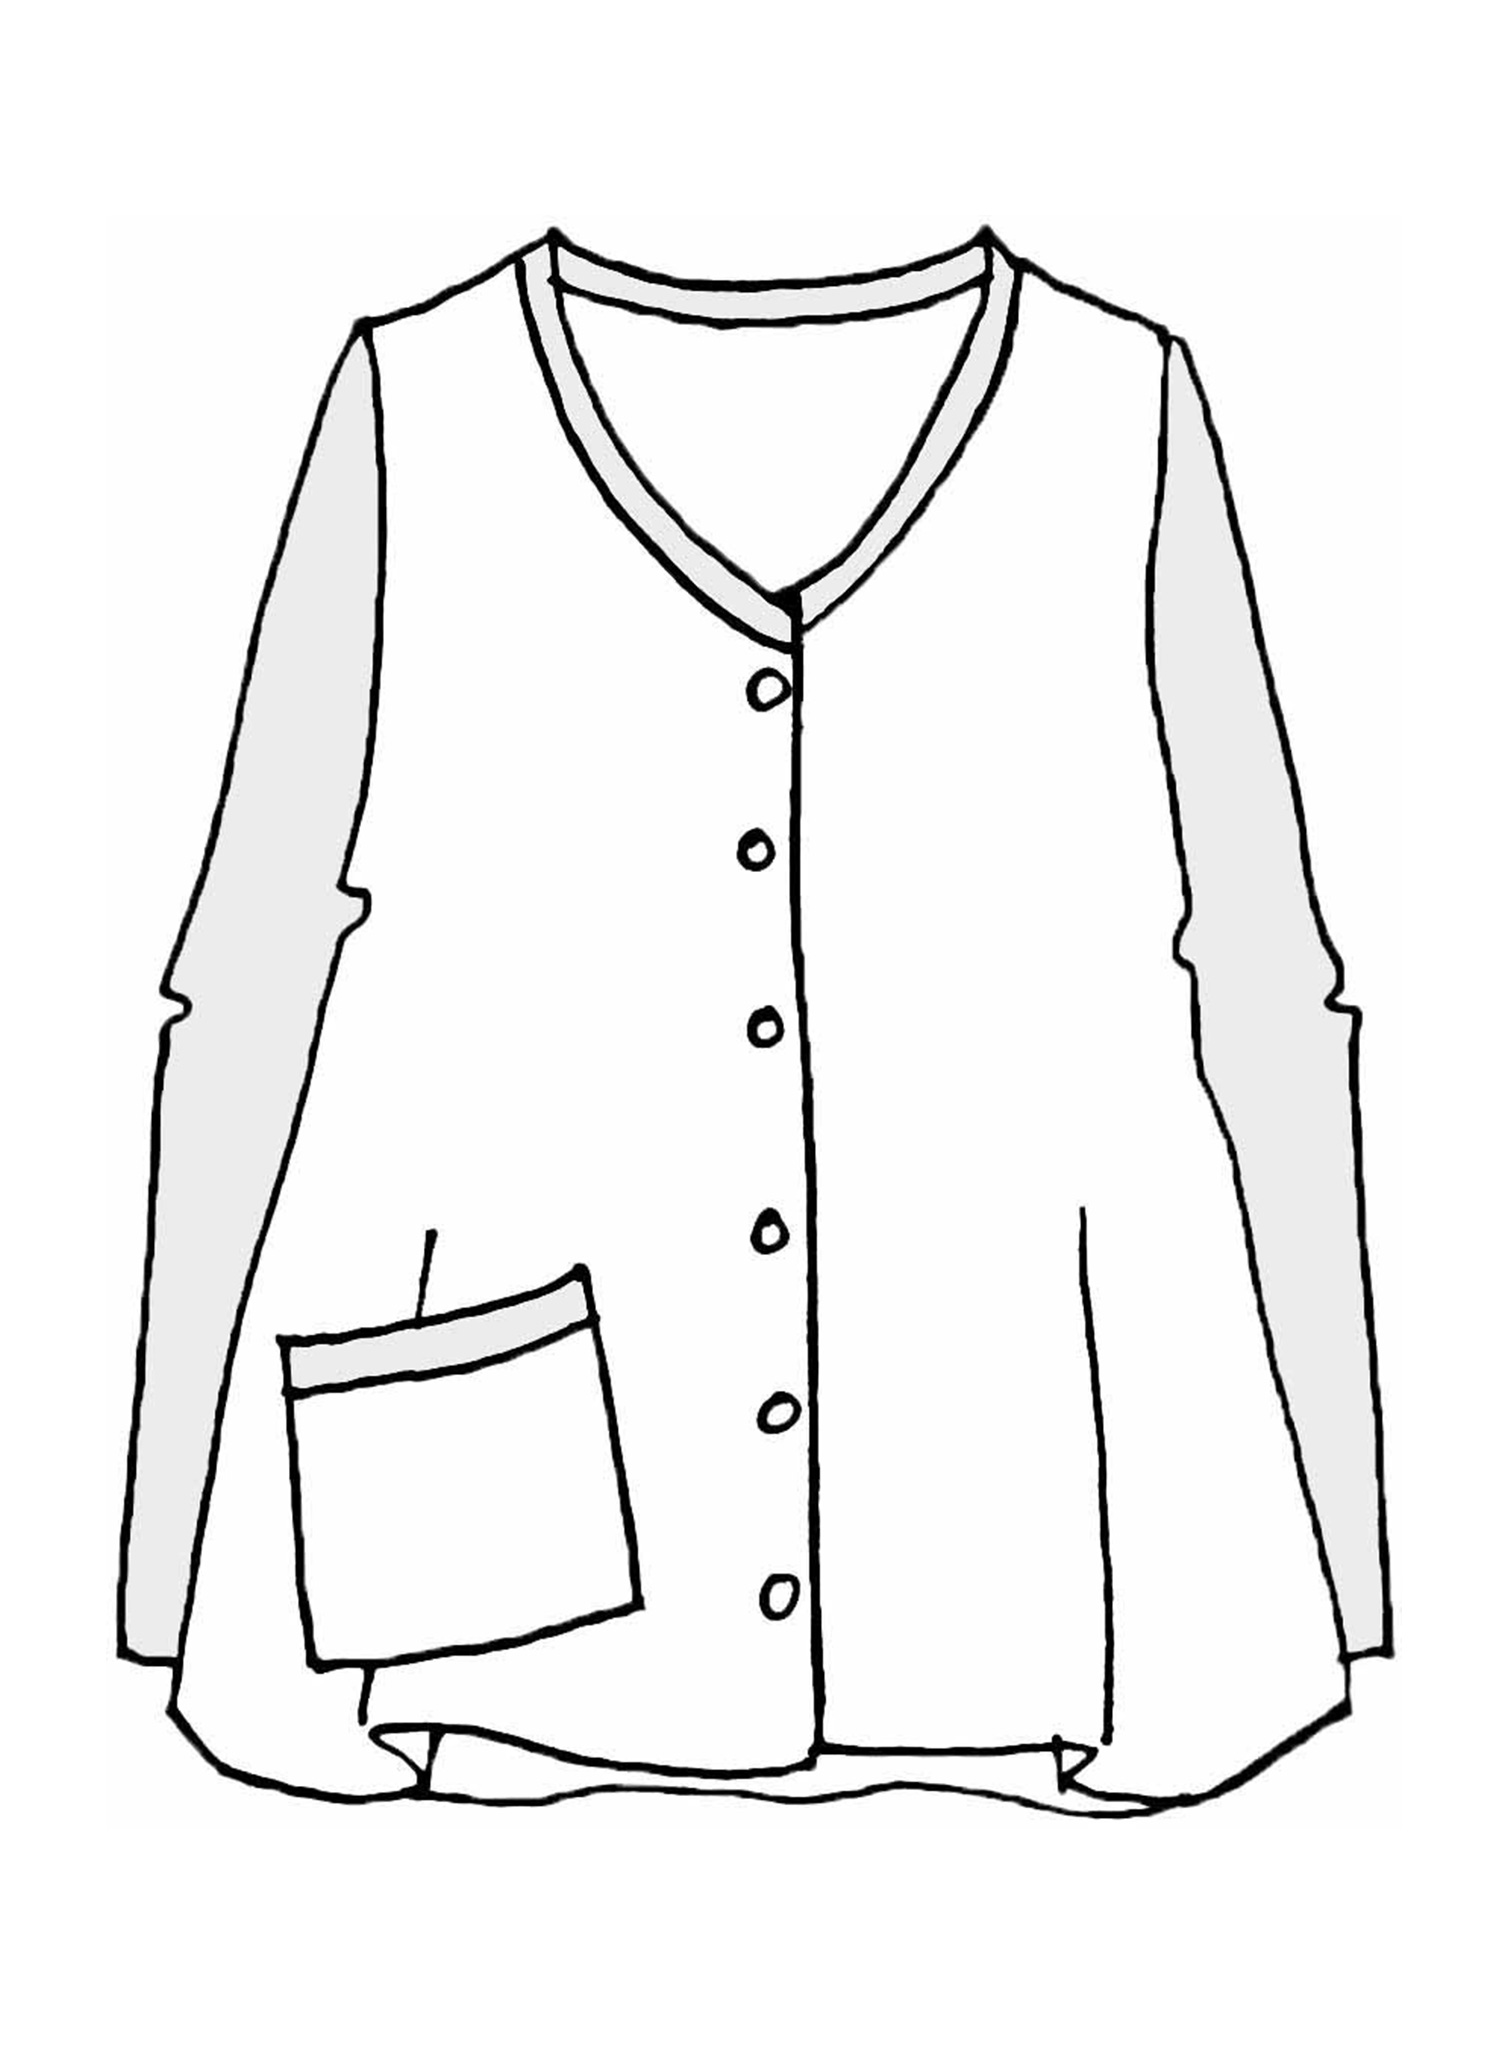 Grassroots Cardigan sketch image